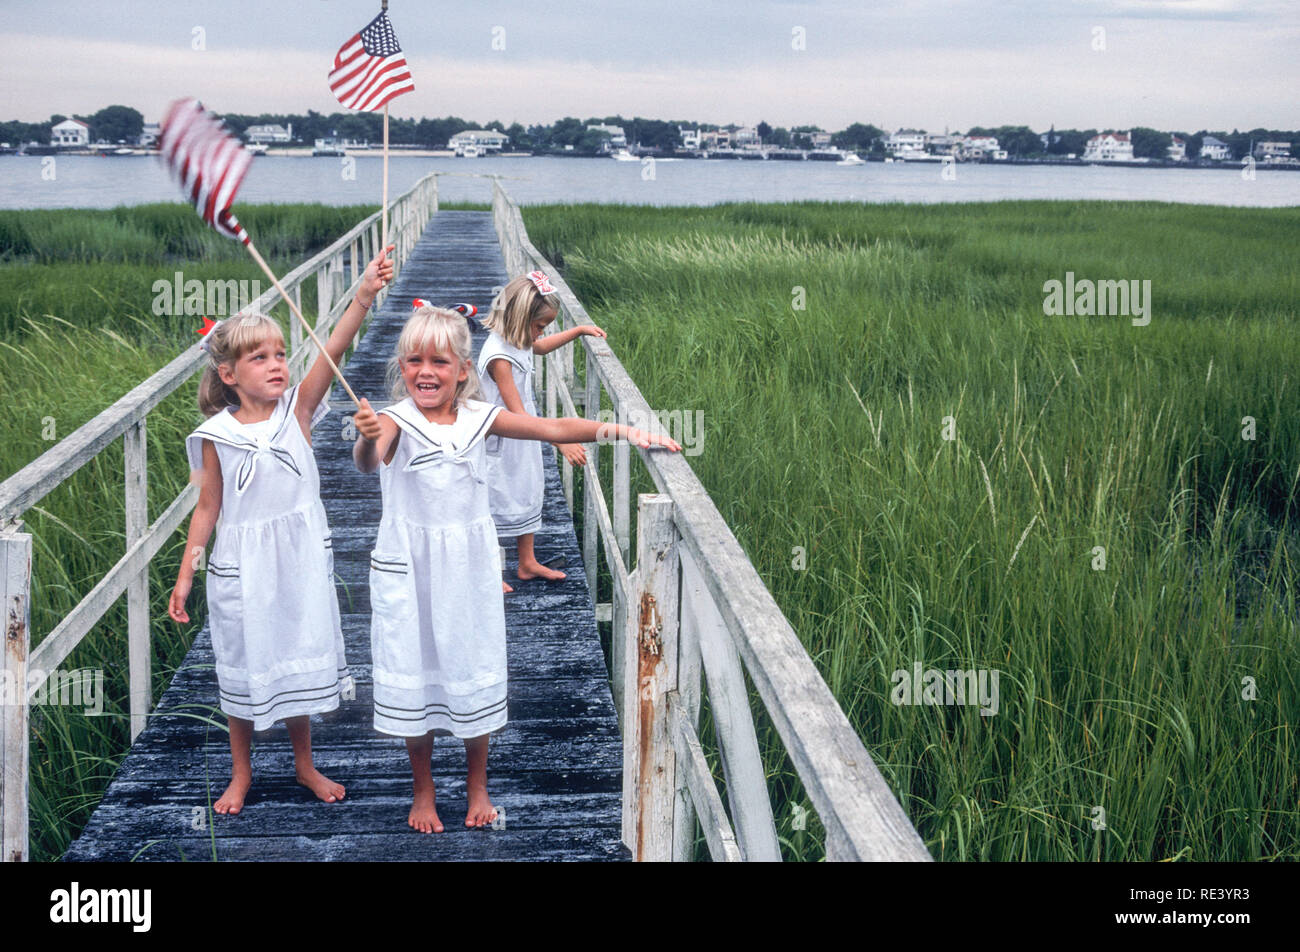 Identical Six Year Old Triplet SistersWaving Flags on the 4th of July, USA - Stock Image